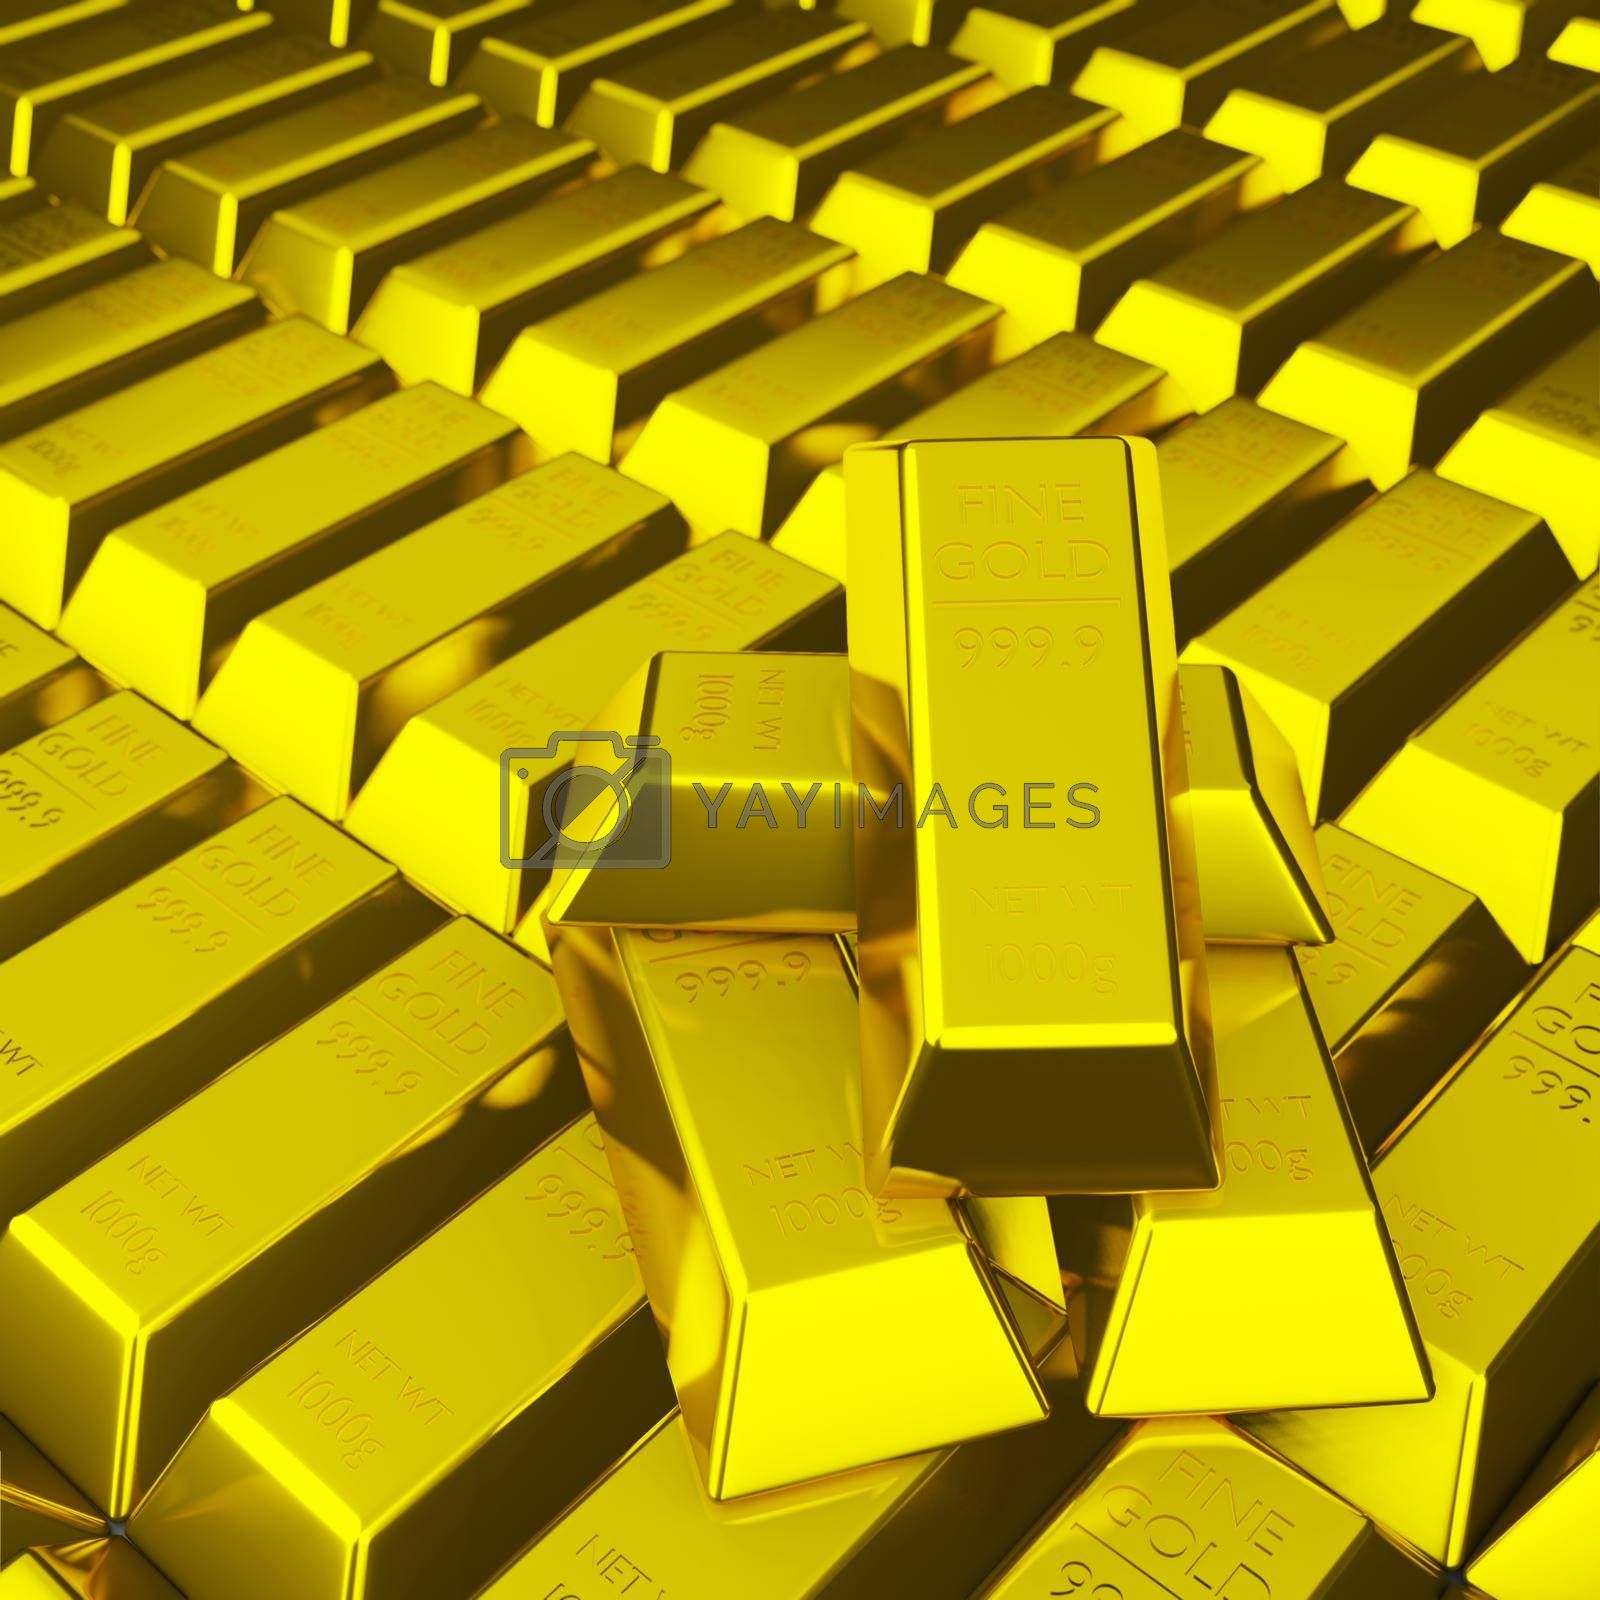 Royalty free image of Pile of fine gold bar 999.9 g by eaglesky